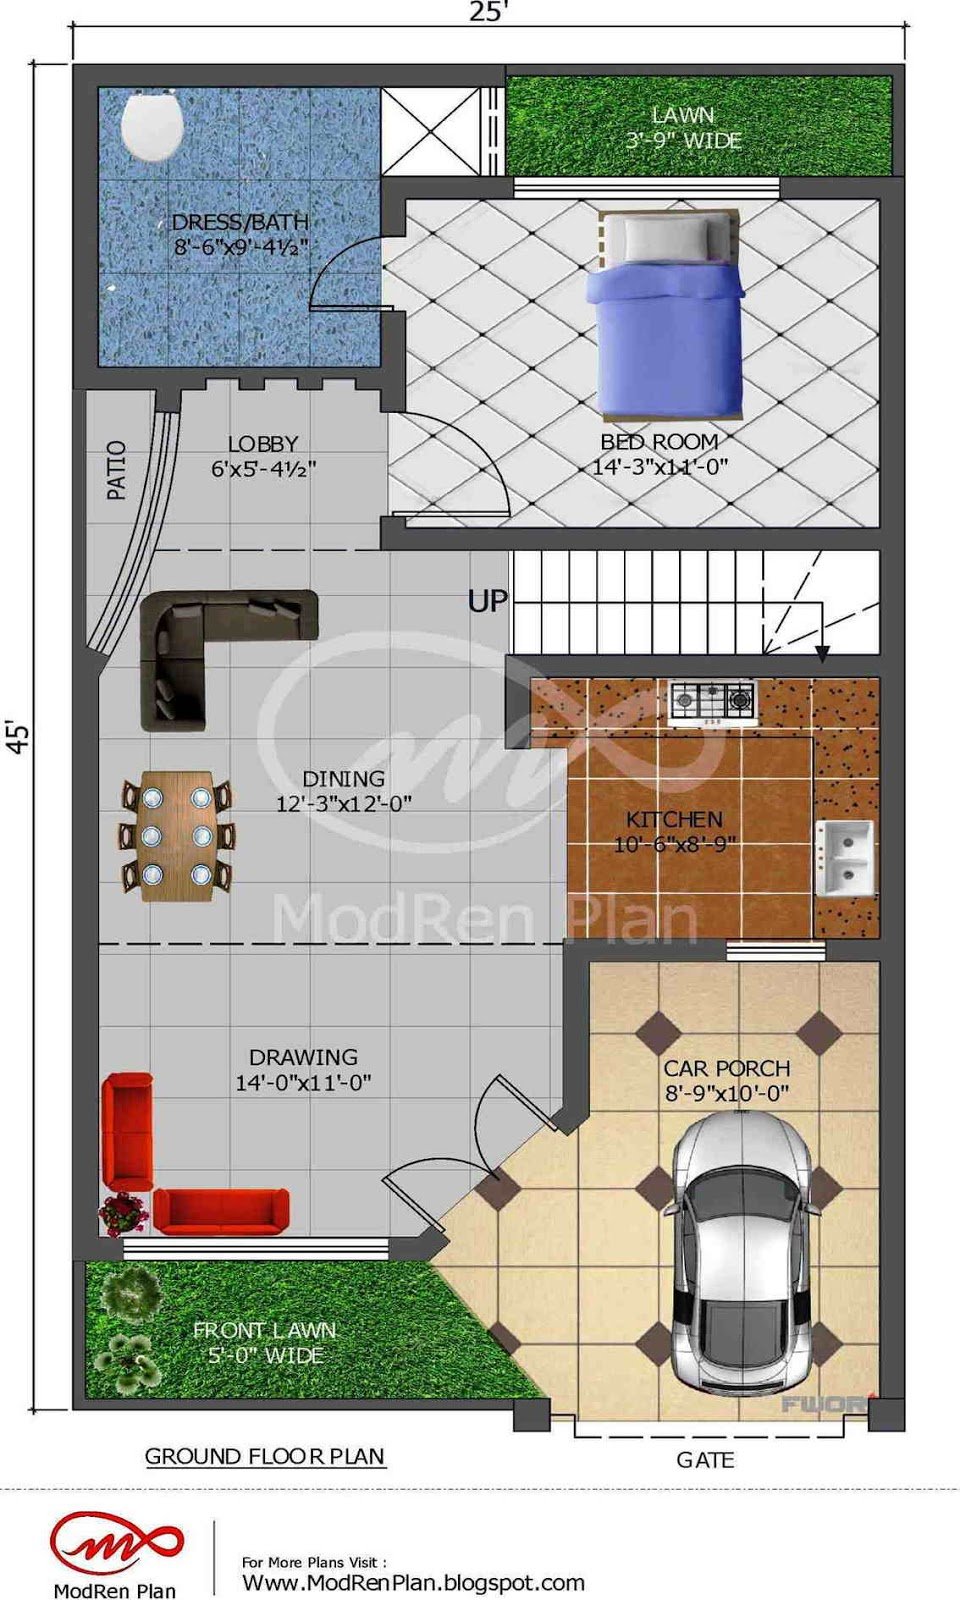 5 marla house plan 1200 sq ft 25x45 feet www modrenplan blogspot